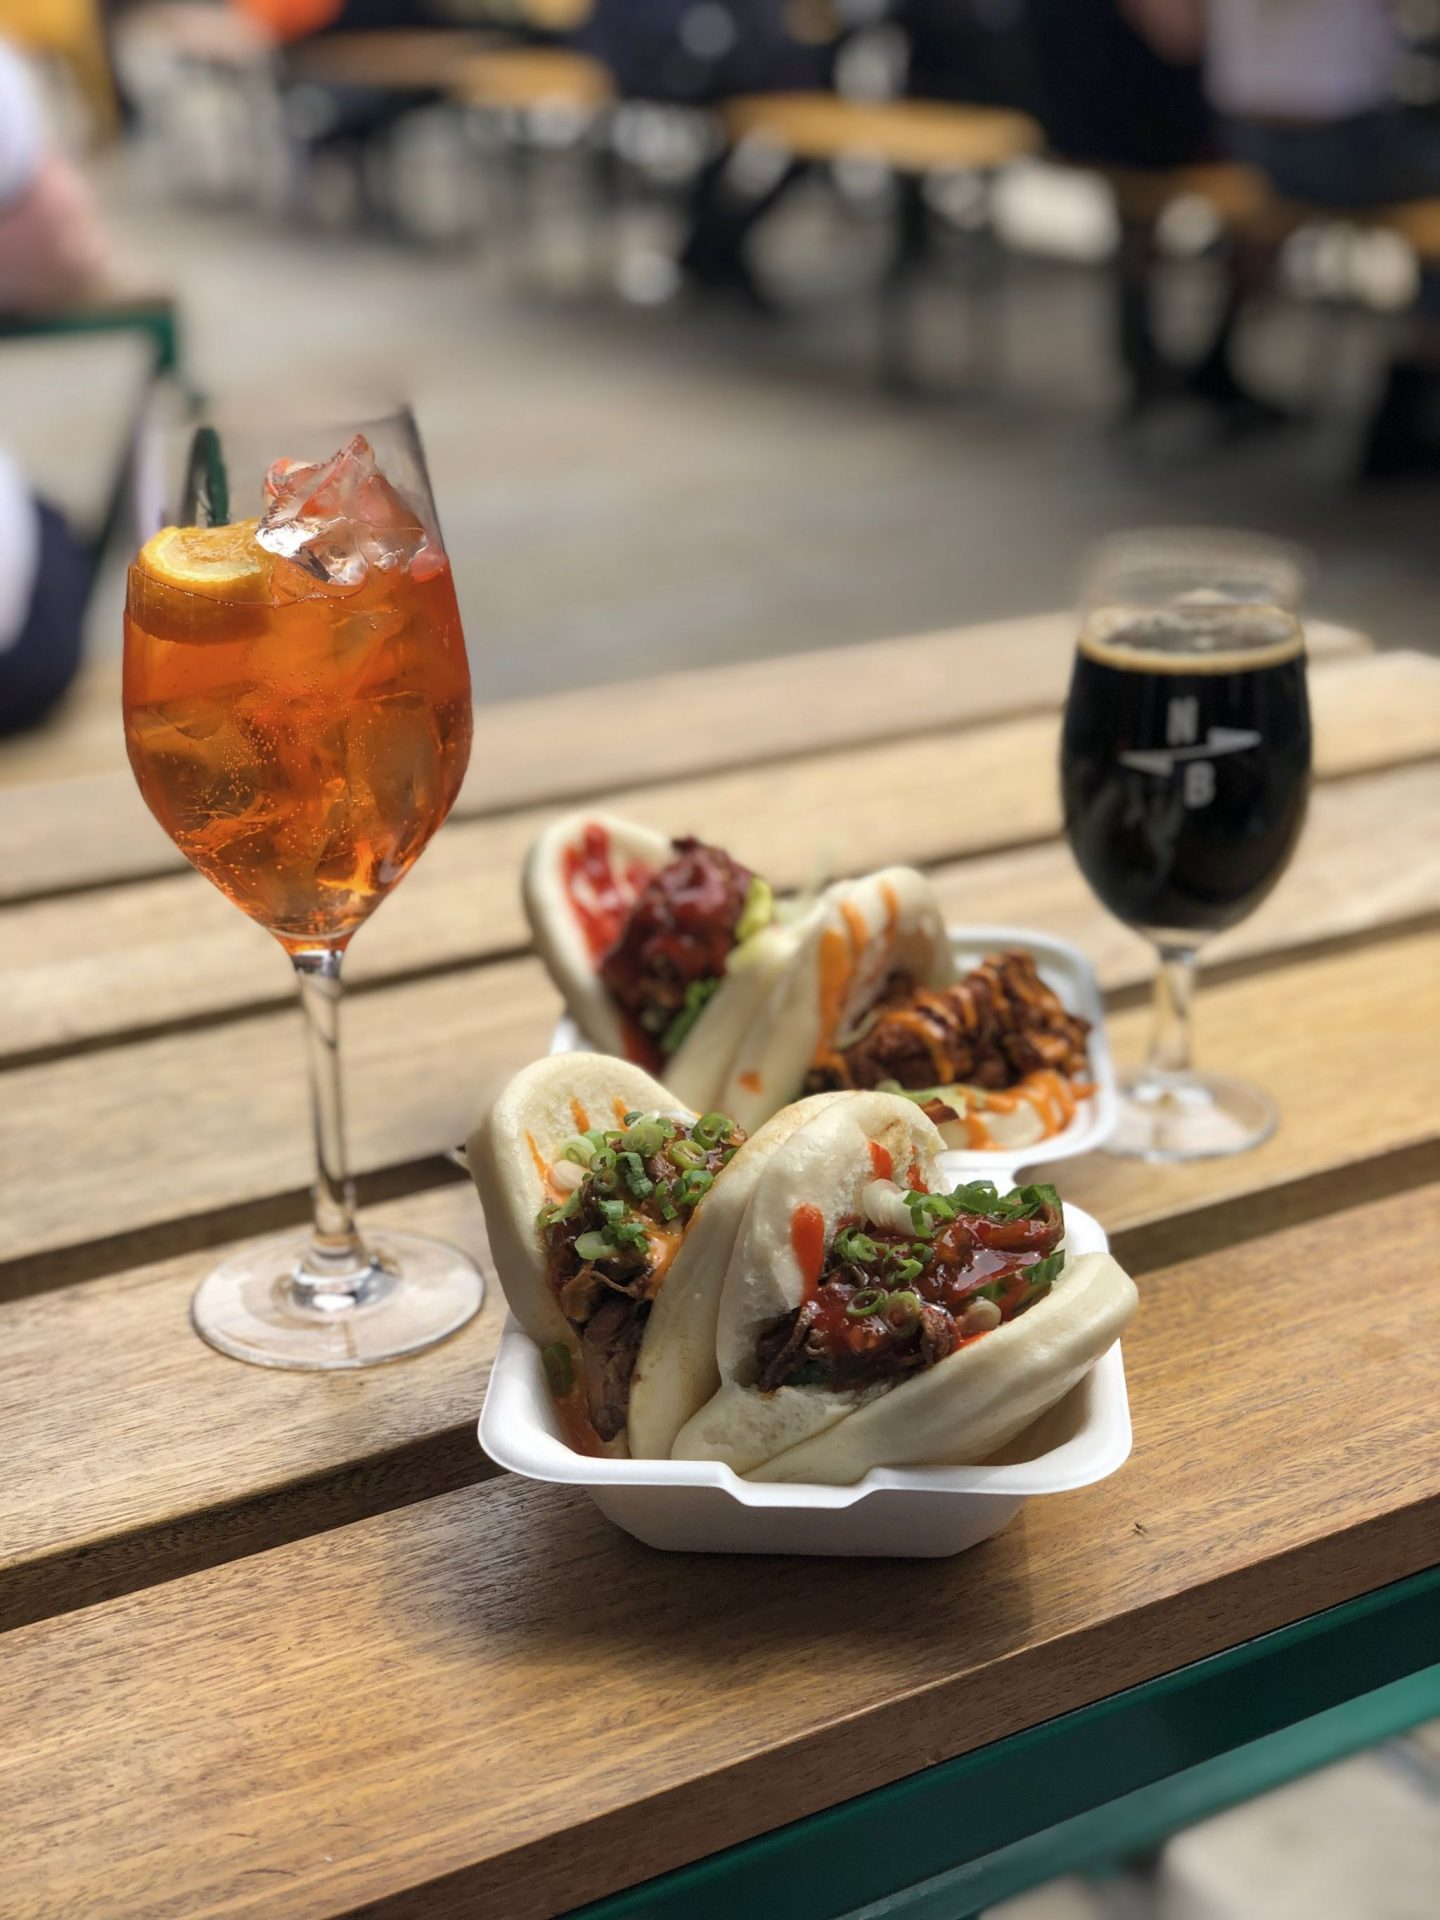 Beer and Bao buns from Little Bao Boy in Leeds